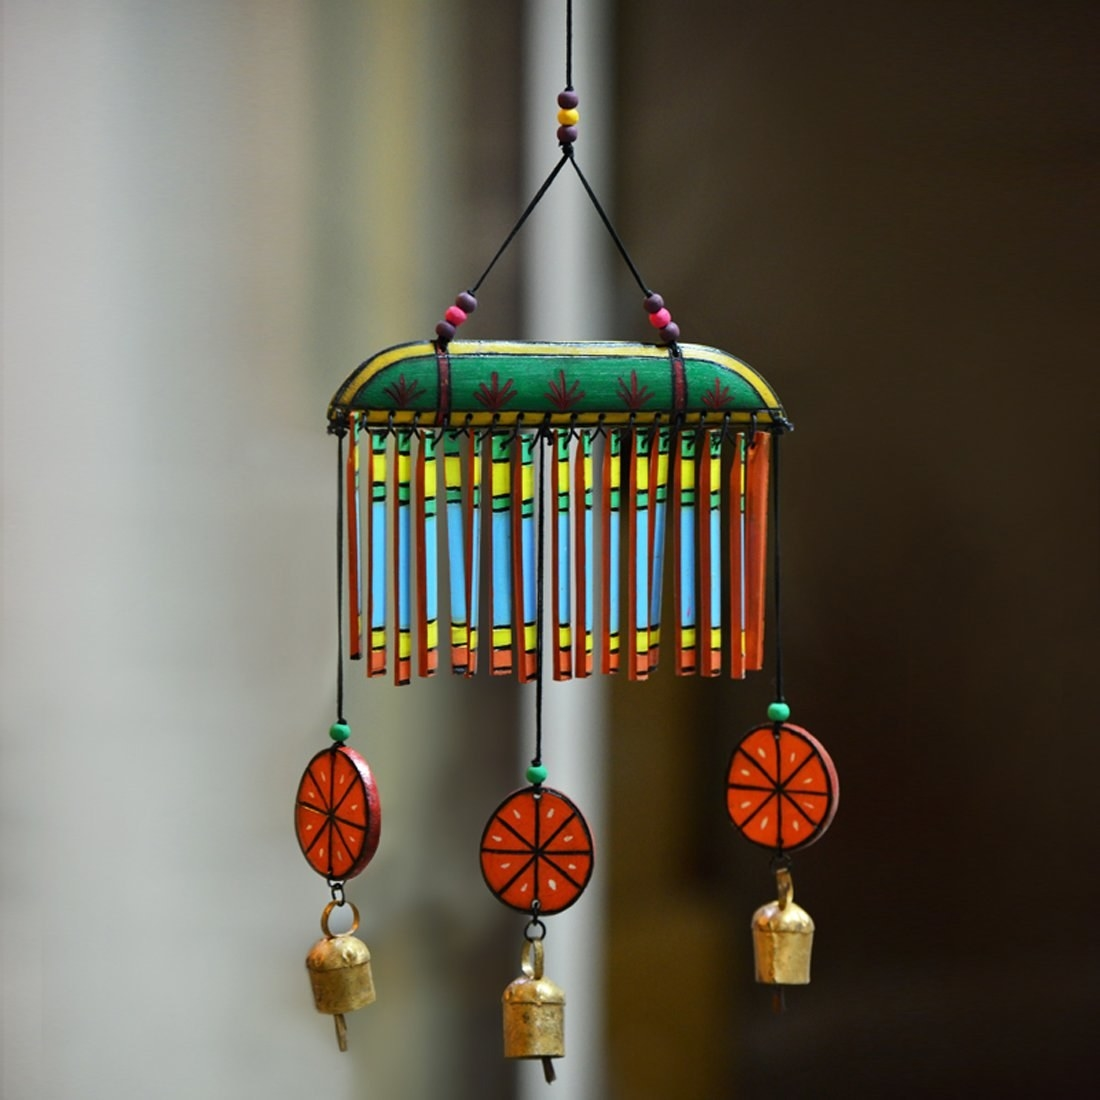 Wooden wind chimes painted in blue, green, yellow and orange. The ends have wooden orange slices and bells hanging on them.